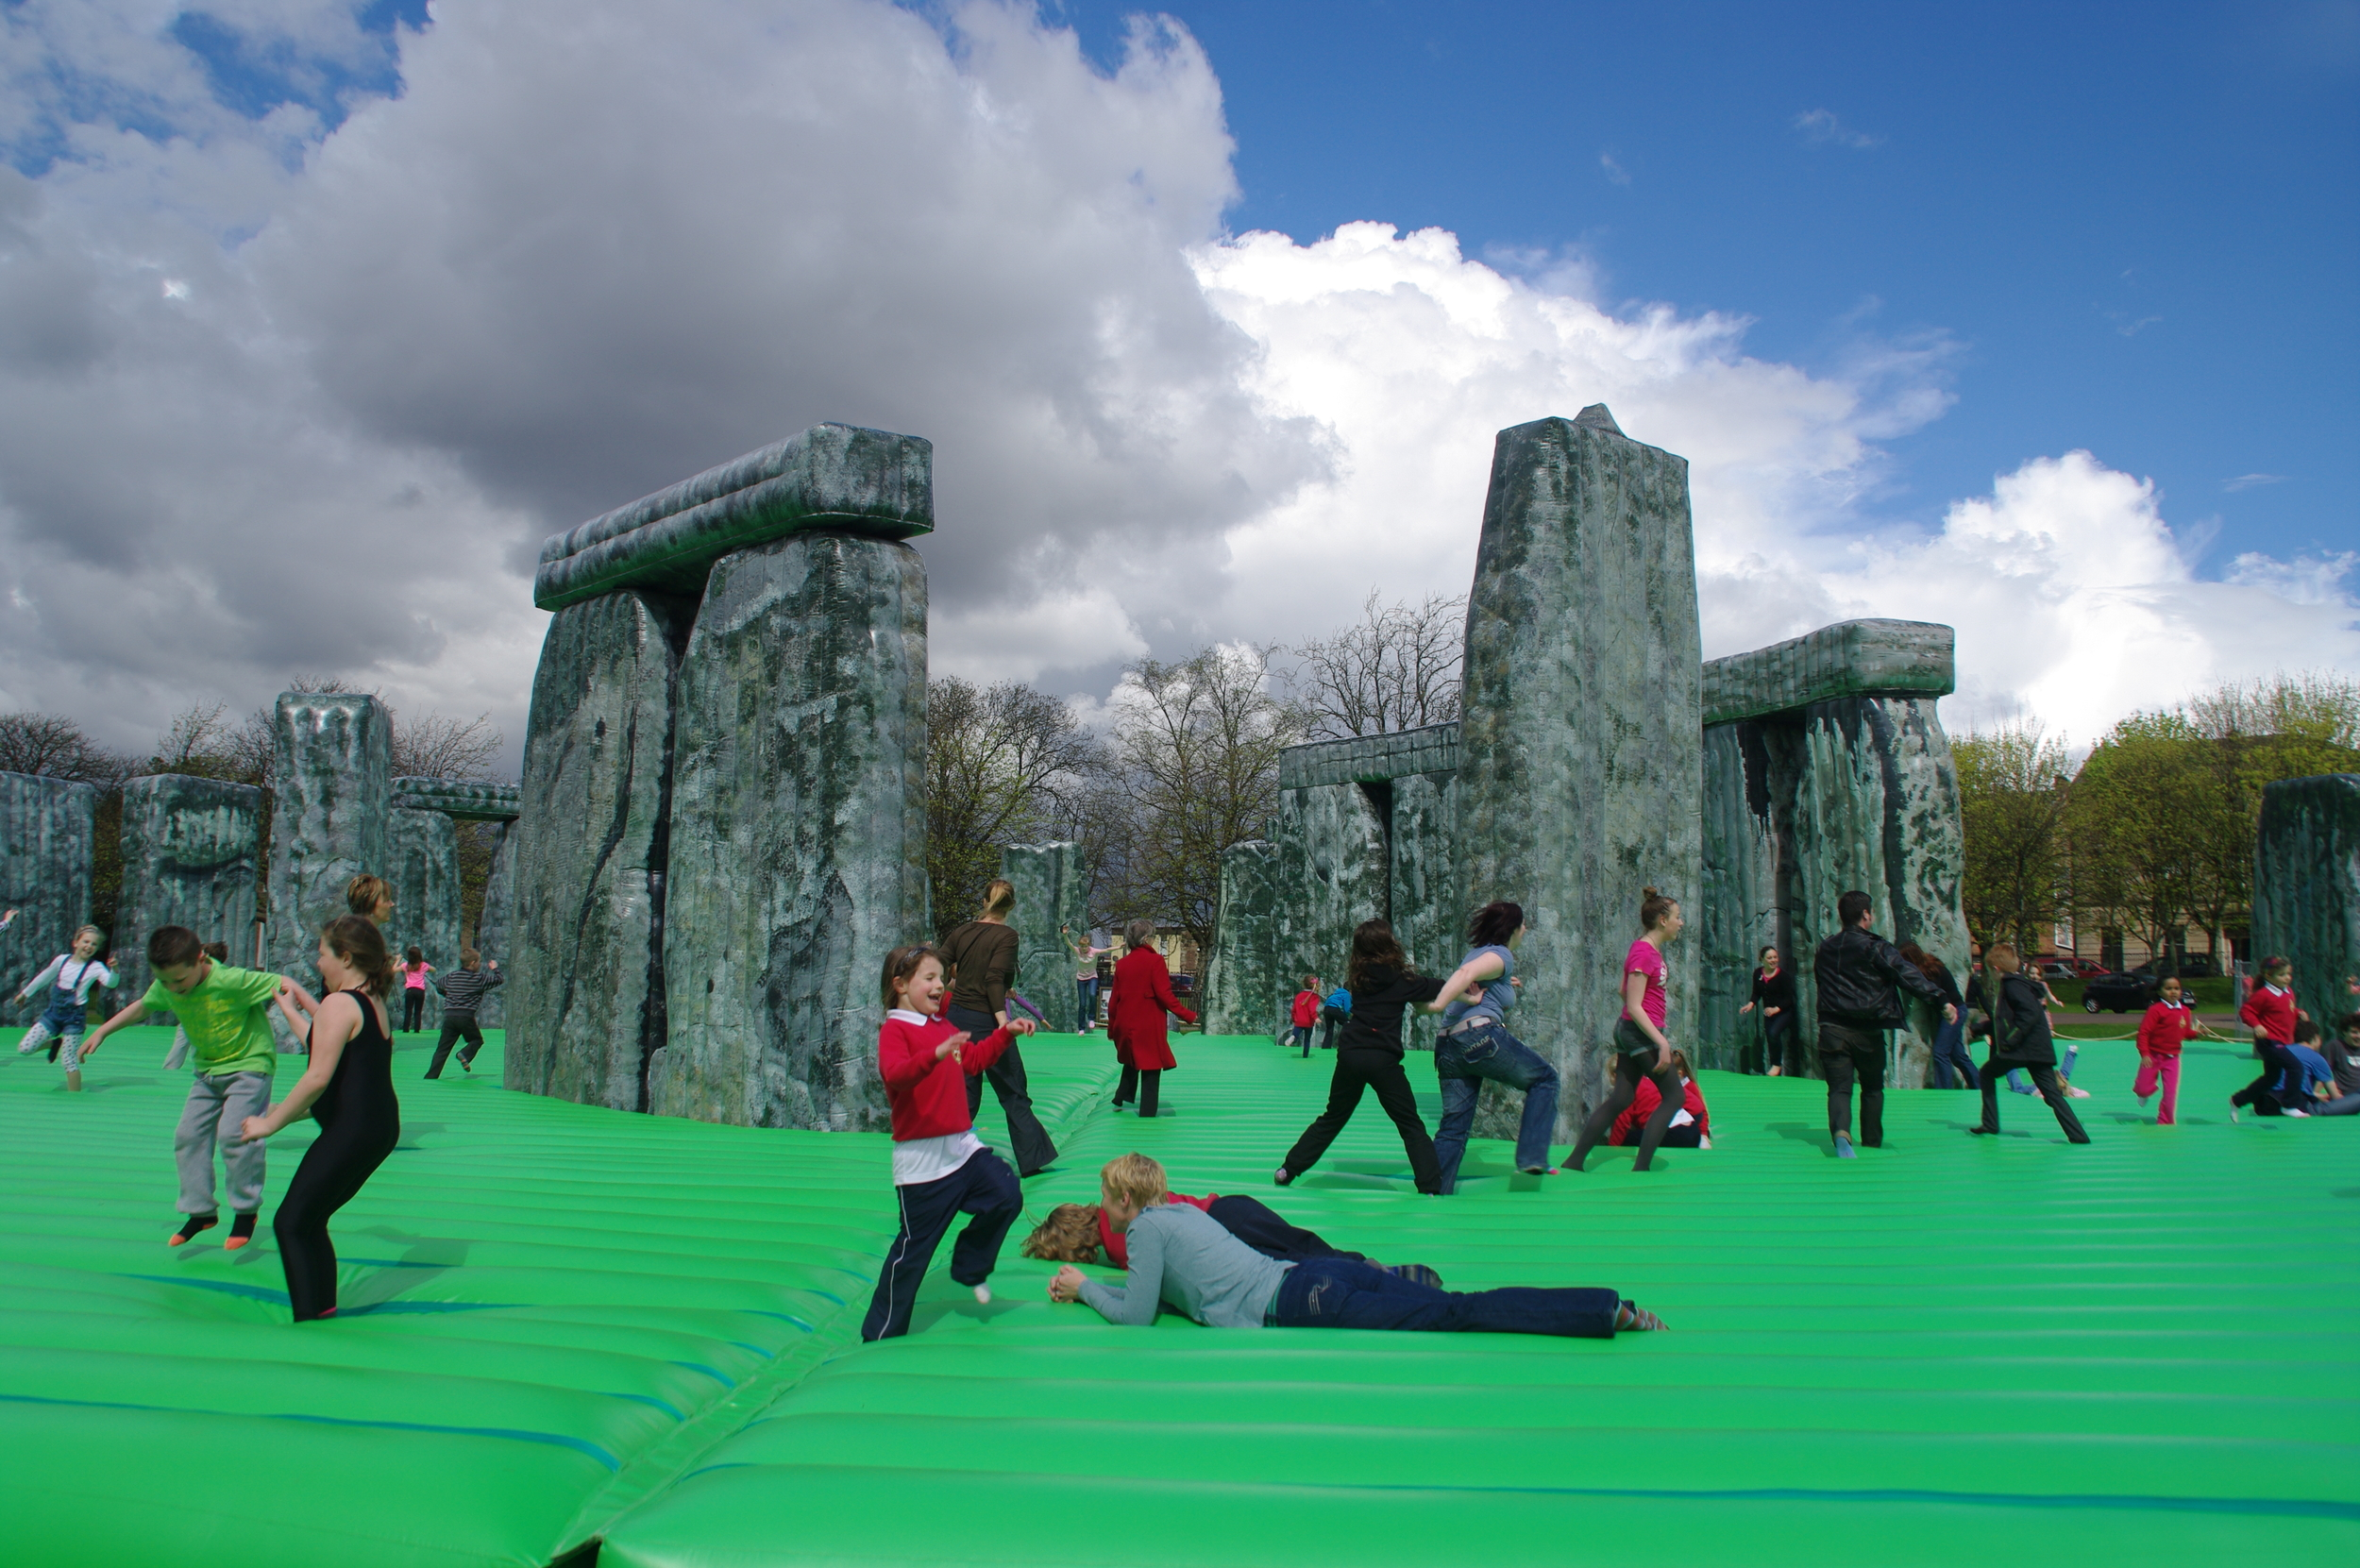 Sacrilege , installation, 2012. Image courtesy of Jeremy Deller.